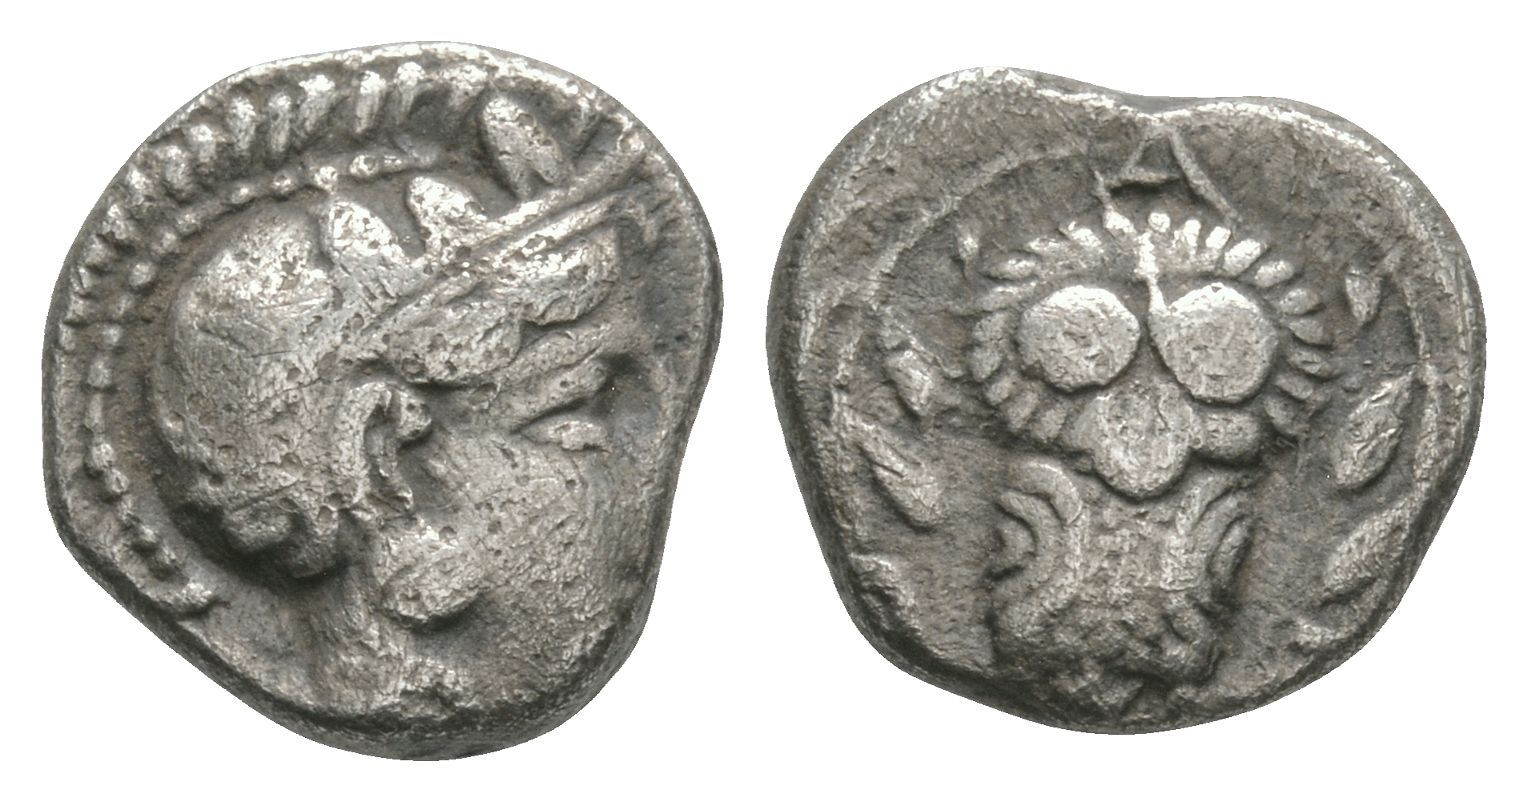 Ancient Greek Coins - Athens - Owl Hemidrachm